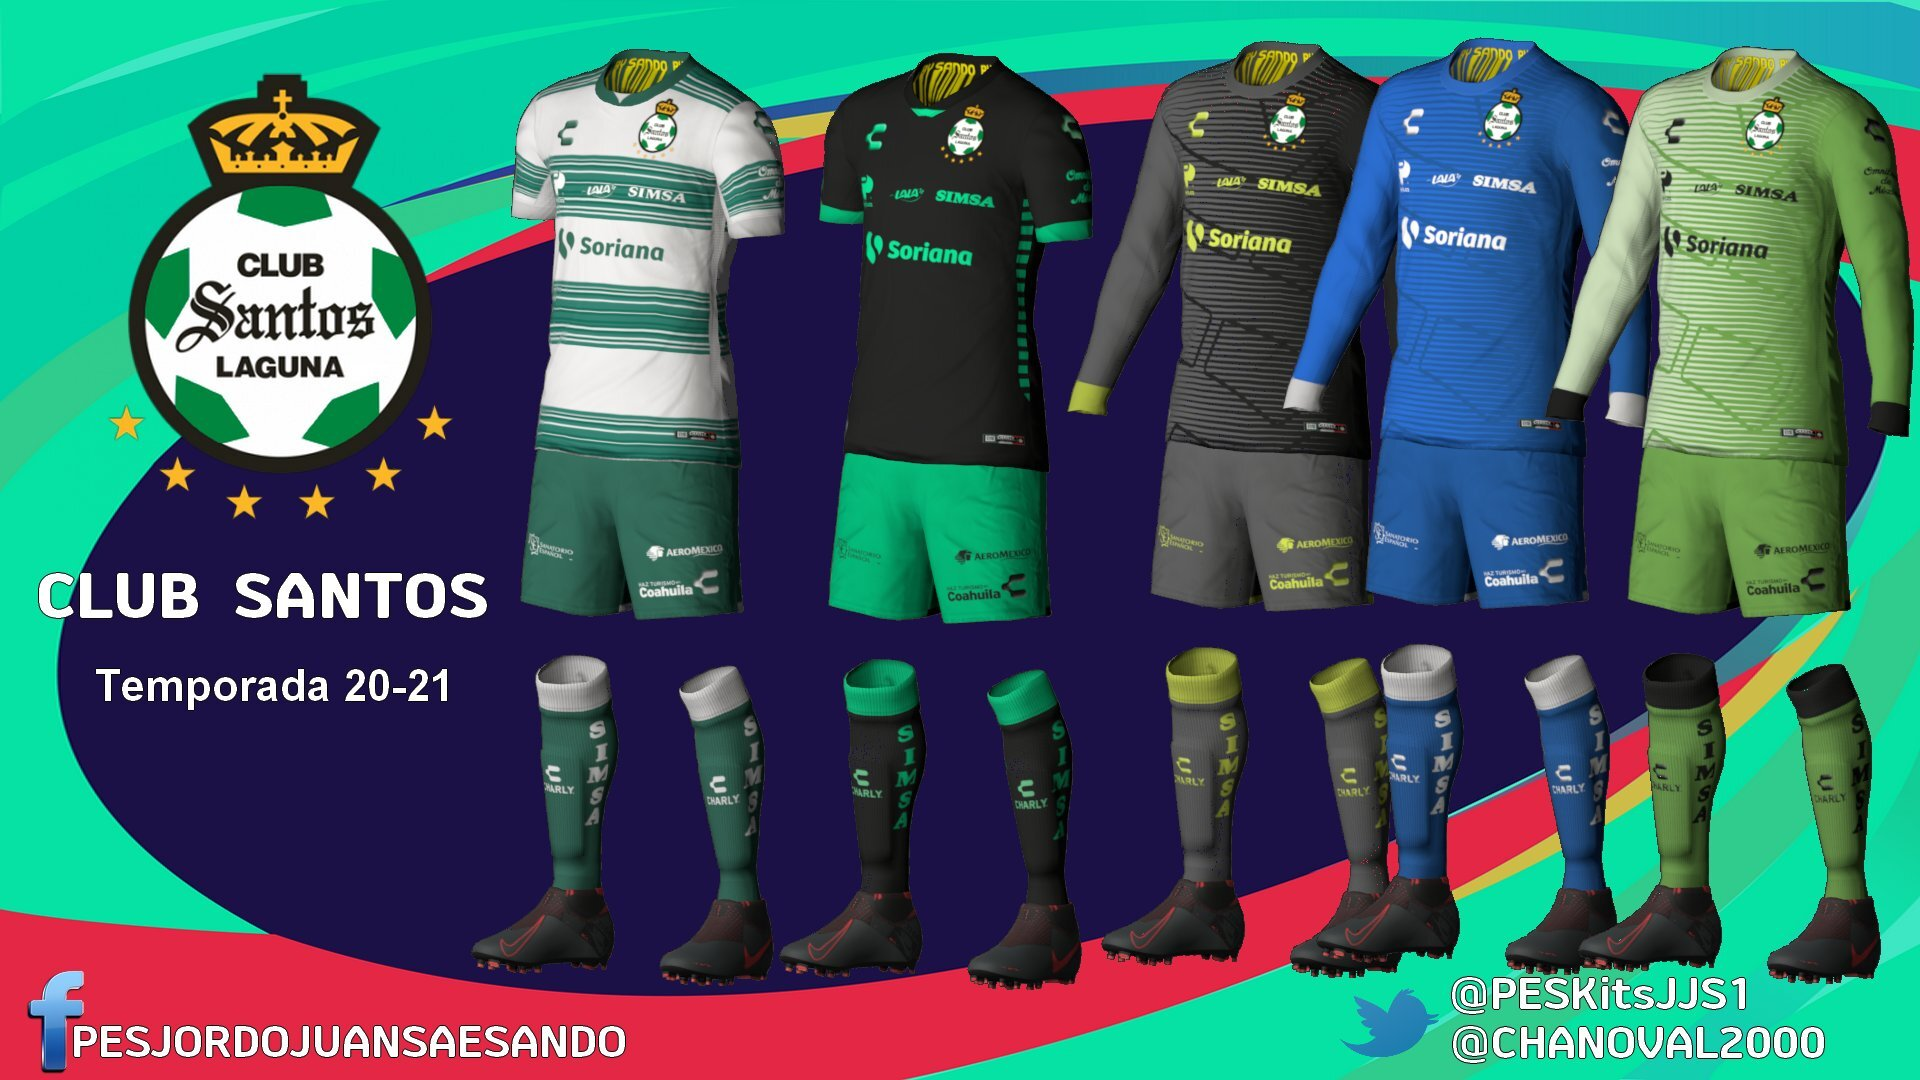 Kits Club Stantos Laguna 2020/2021 by Sando